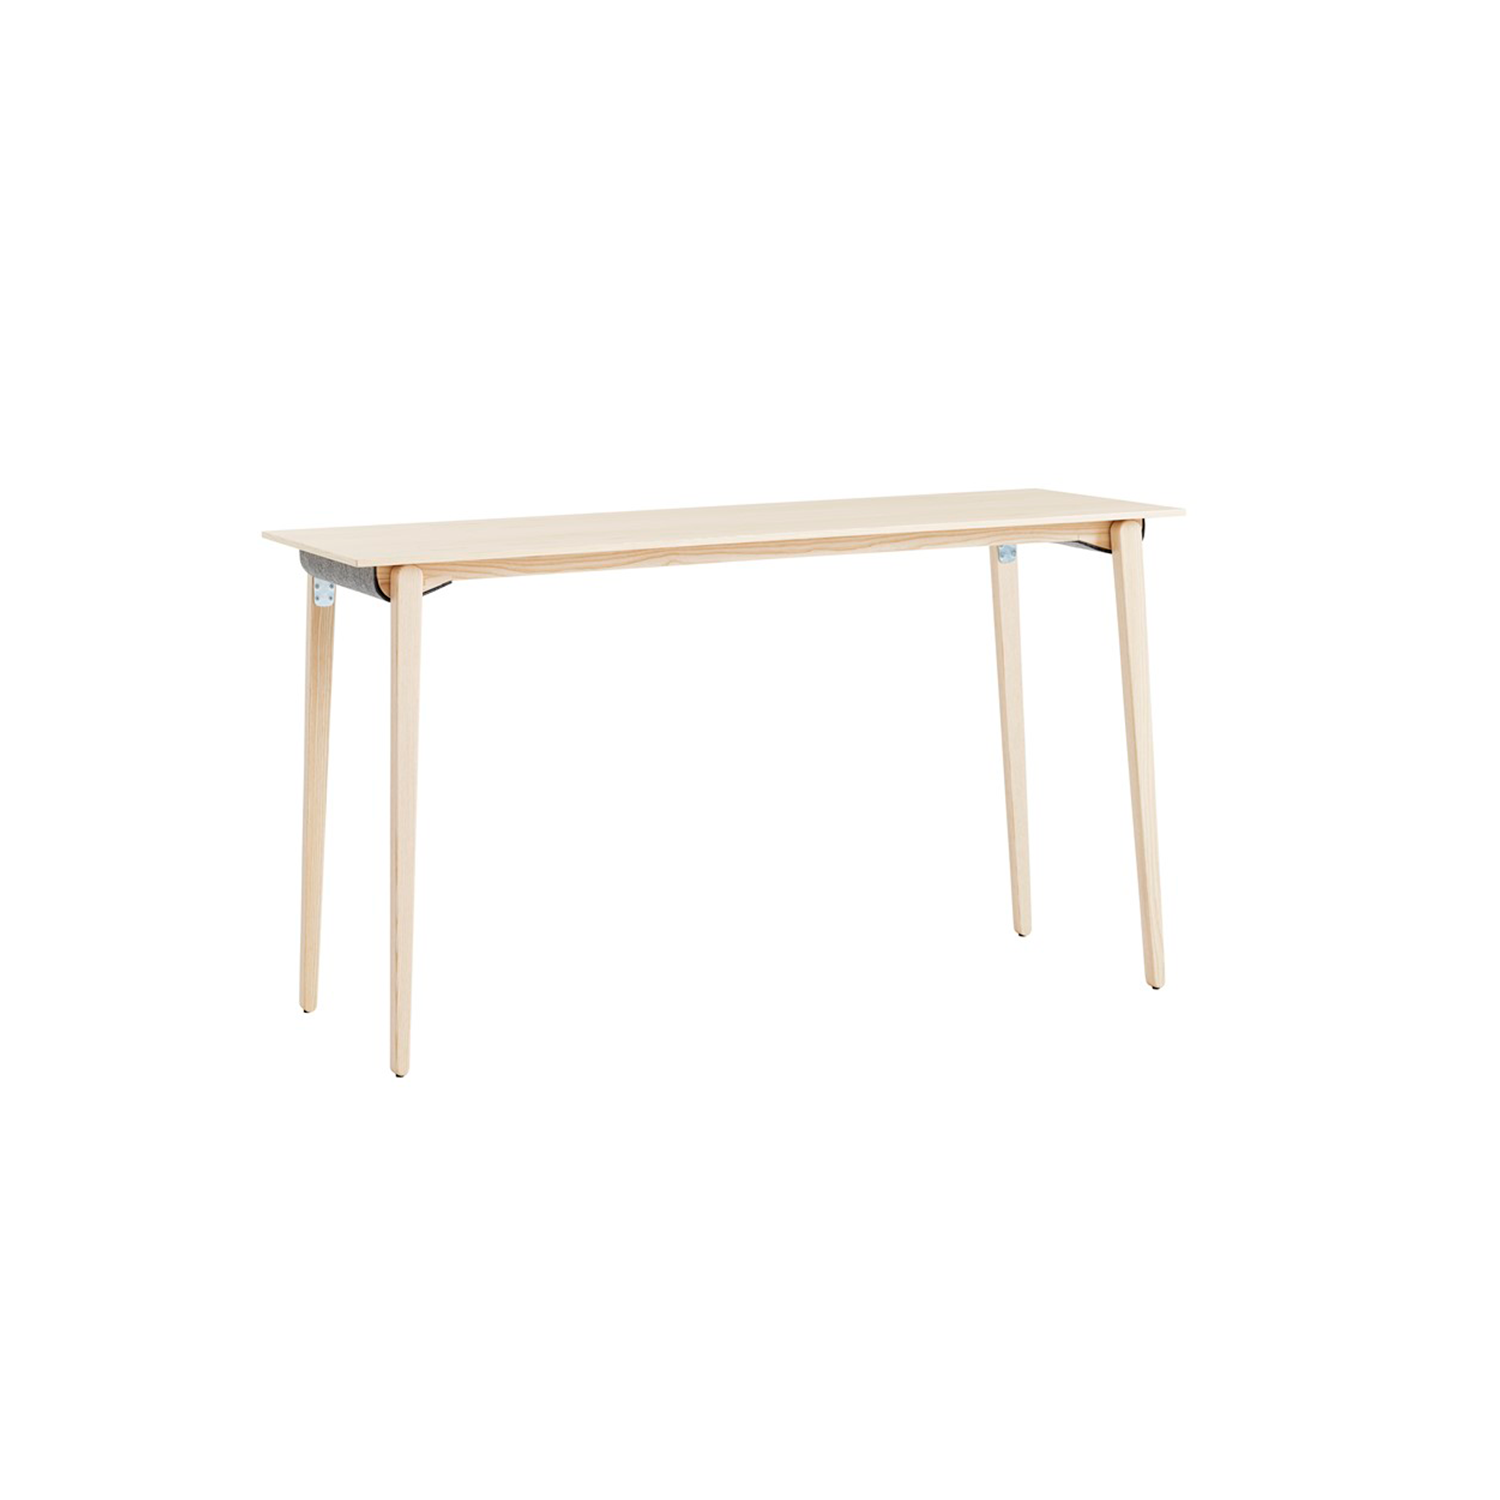 Press Table 1500 - Press (2015) is the result of an undertaking to construct a folding table made entirely out of wood. The challenge was to make a table that was lighter yet just as stable to use, just as simple to fold up and just as long-lasting as similar constructions. After years of experimentation, the designers succeeded in developing an innovative, adjustable locking mechanism which ensures that the table is not only exceptionally stable but also simple to fold up. In addition, the legs lock in place without the need for a cross-piece or stretcher, thus providing knee room for comfortable seating at the short ends of the table. A concealed grip milled into the underside of the tabletop makes moving the table simpler. The tabletop is veneered with oak, birch, ash, standard stains on ash and white glazed oak or ash. The top is also available in laminate (white, black matte, oak, birch or ash) and black desktop. The table is supplied with a wooden edge strip or for a more durable tabletop, choose a plastic edge strip in white or black. Stacking and safety cover in felt of the colour anthracite as standard. The cover is also available as an option in the colours light grey and off white. The solid wood legs are in oak, birch, ash, standard stains on ash or white glazed oak or ash, and have felt floor protectors as standard.  A range of materials, finishes, colours and accessories including built-in USB ports and cable slots are available in a variety of combinations. Please enquire for more information.  | Matter of Stuff